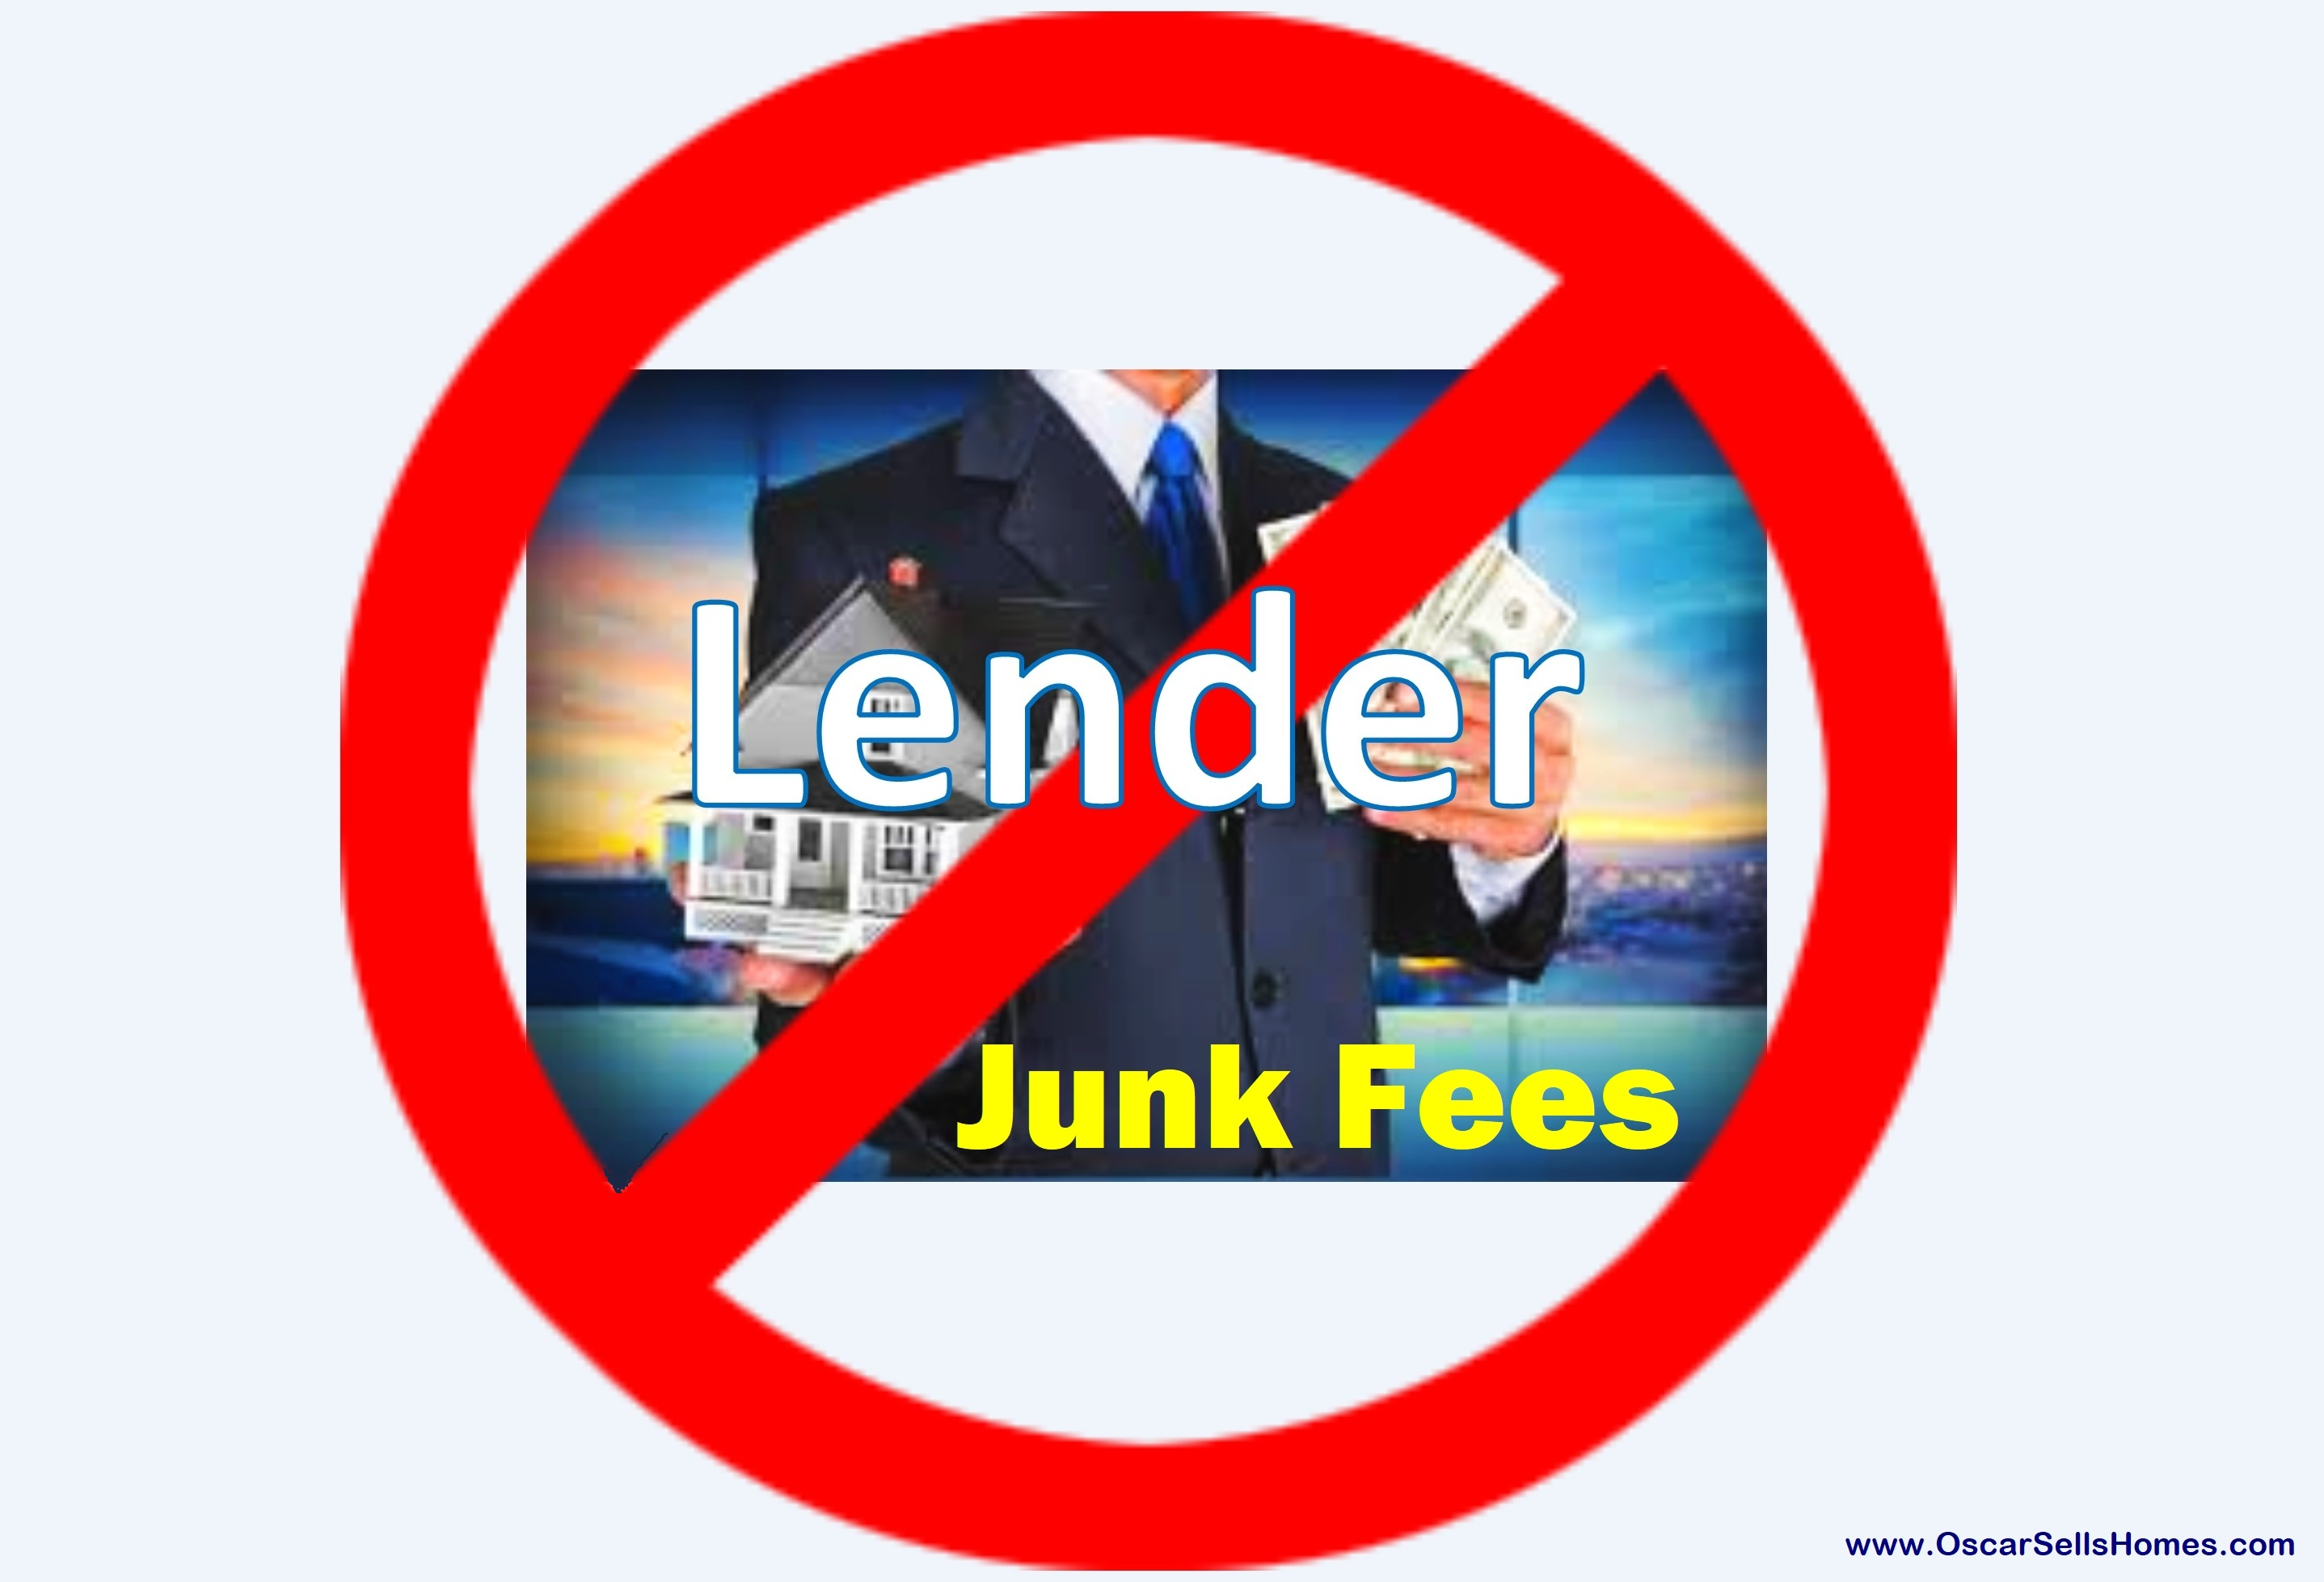 No Lender Junk Fees - Buyers need to be on alert